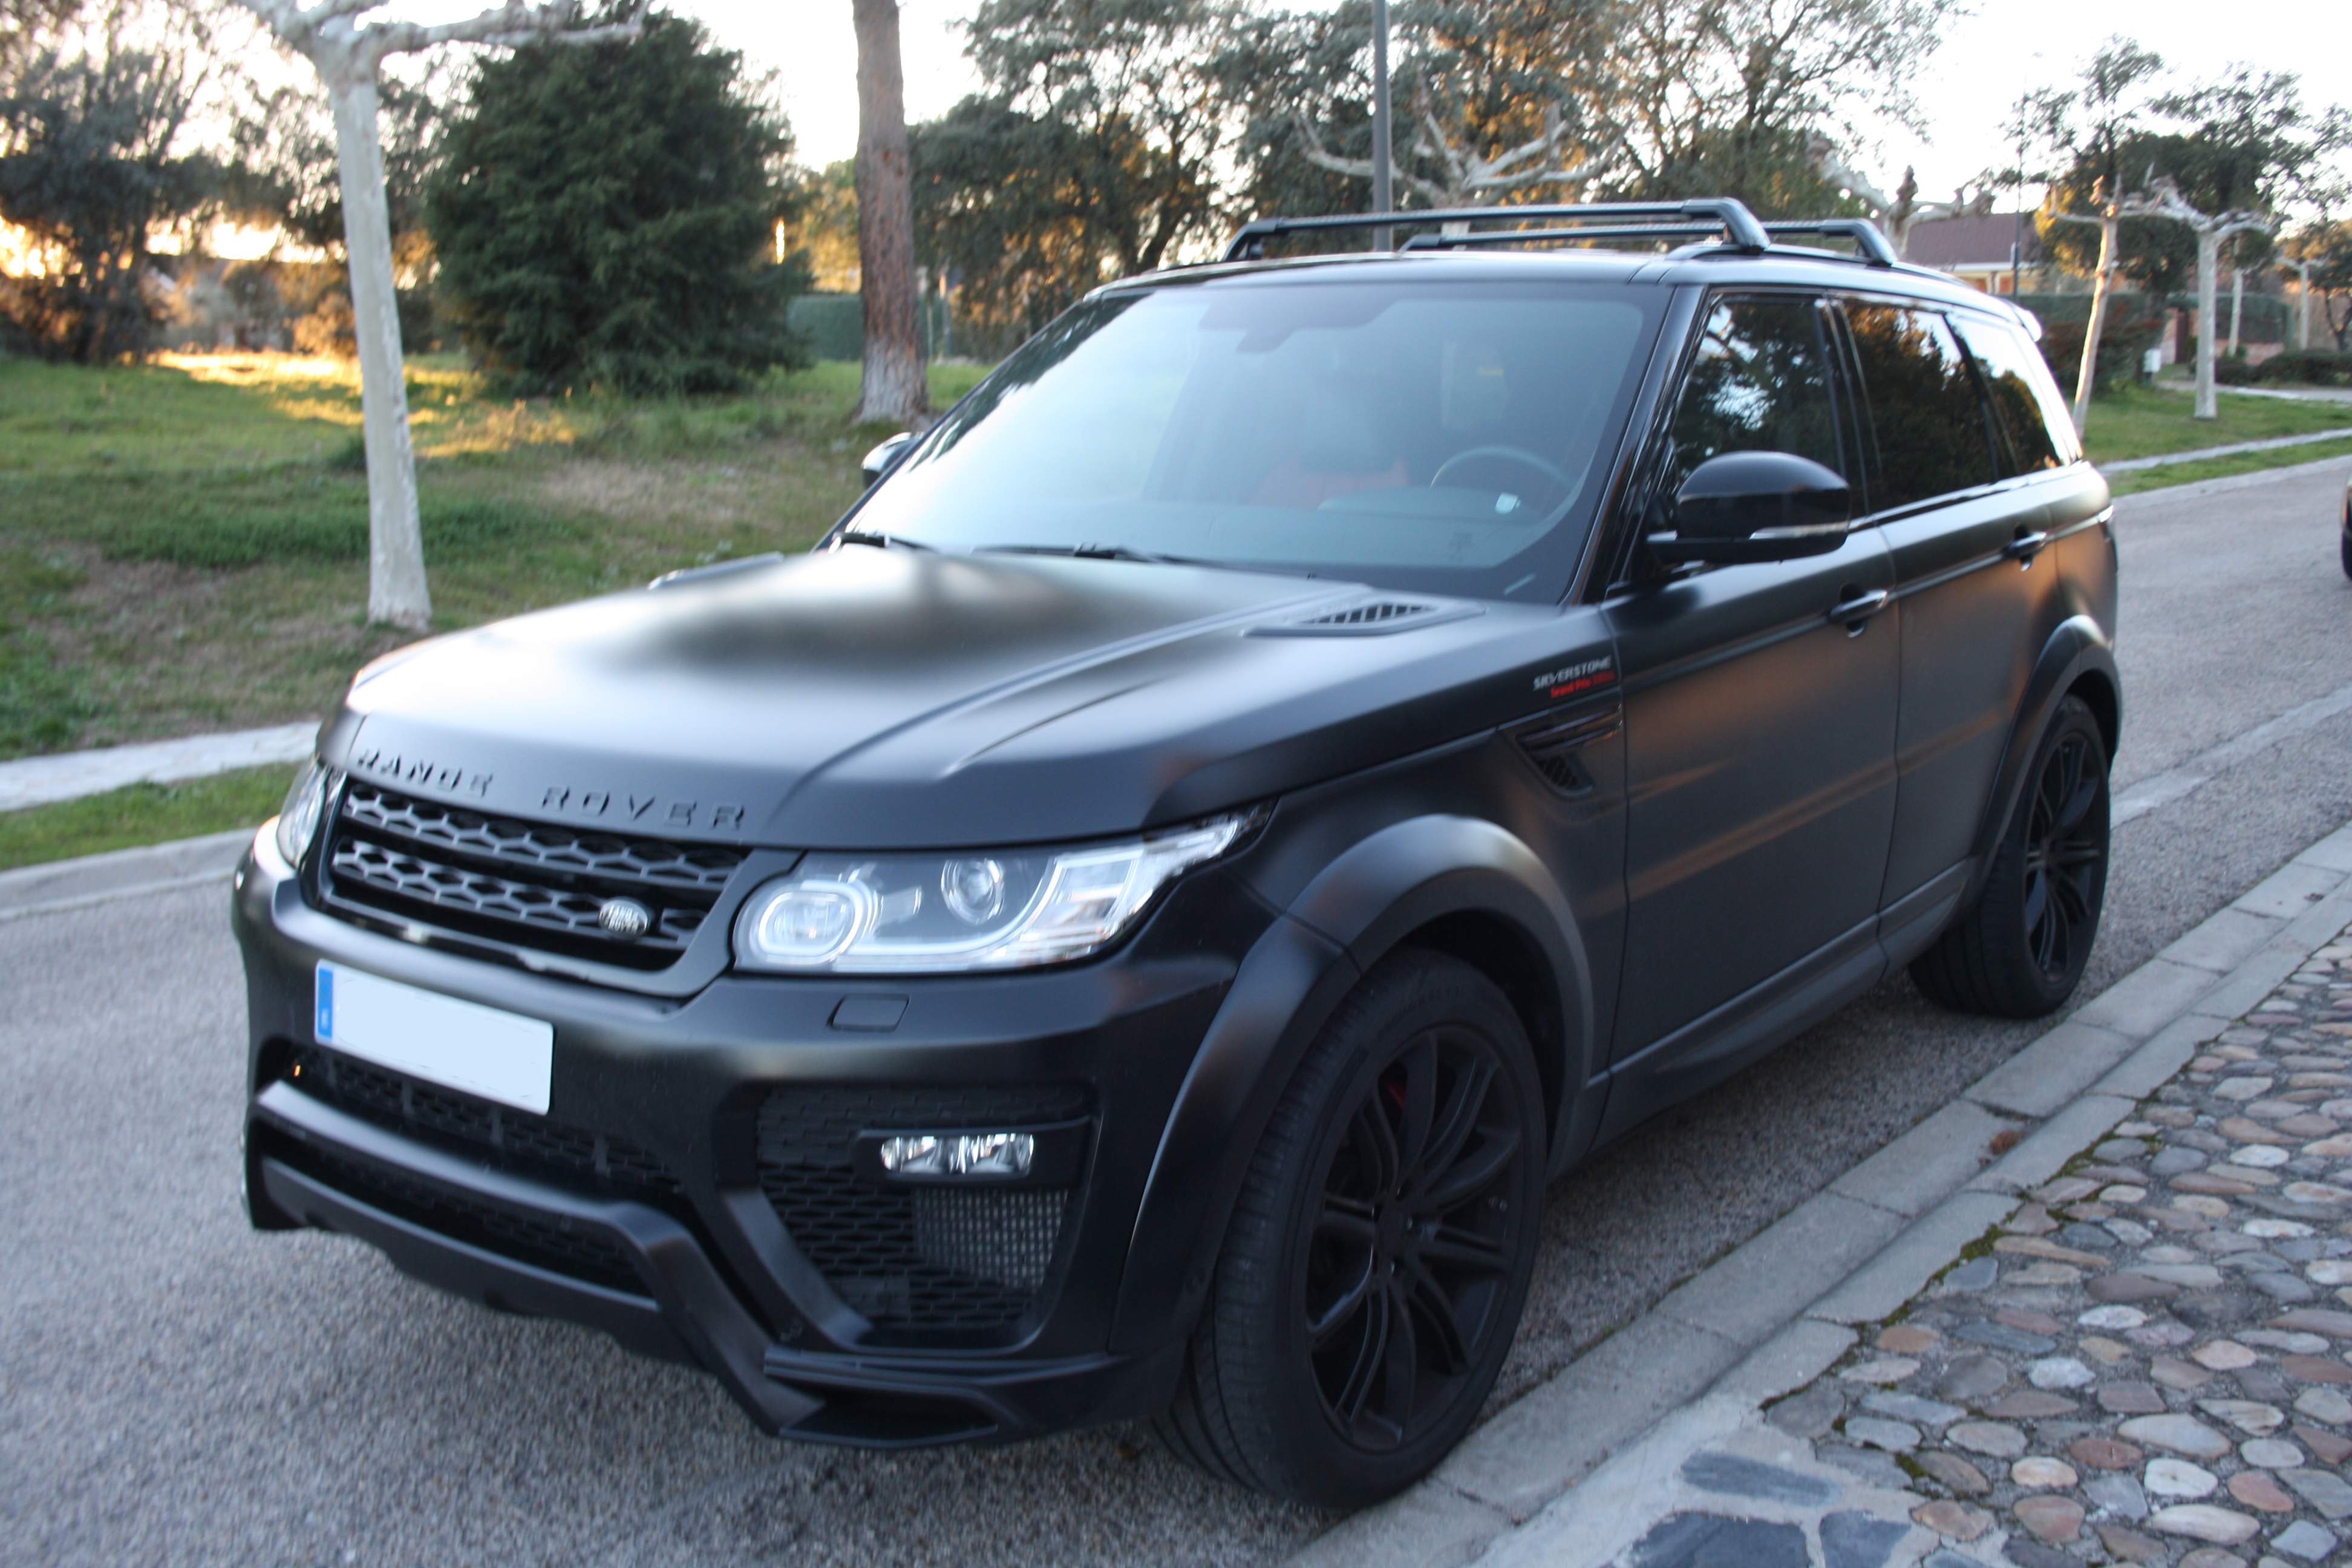 Ranger Rover Sport by Caractere Exclusive